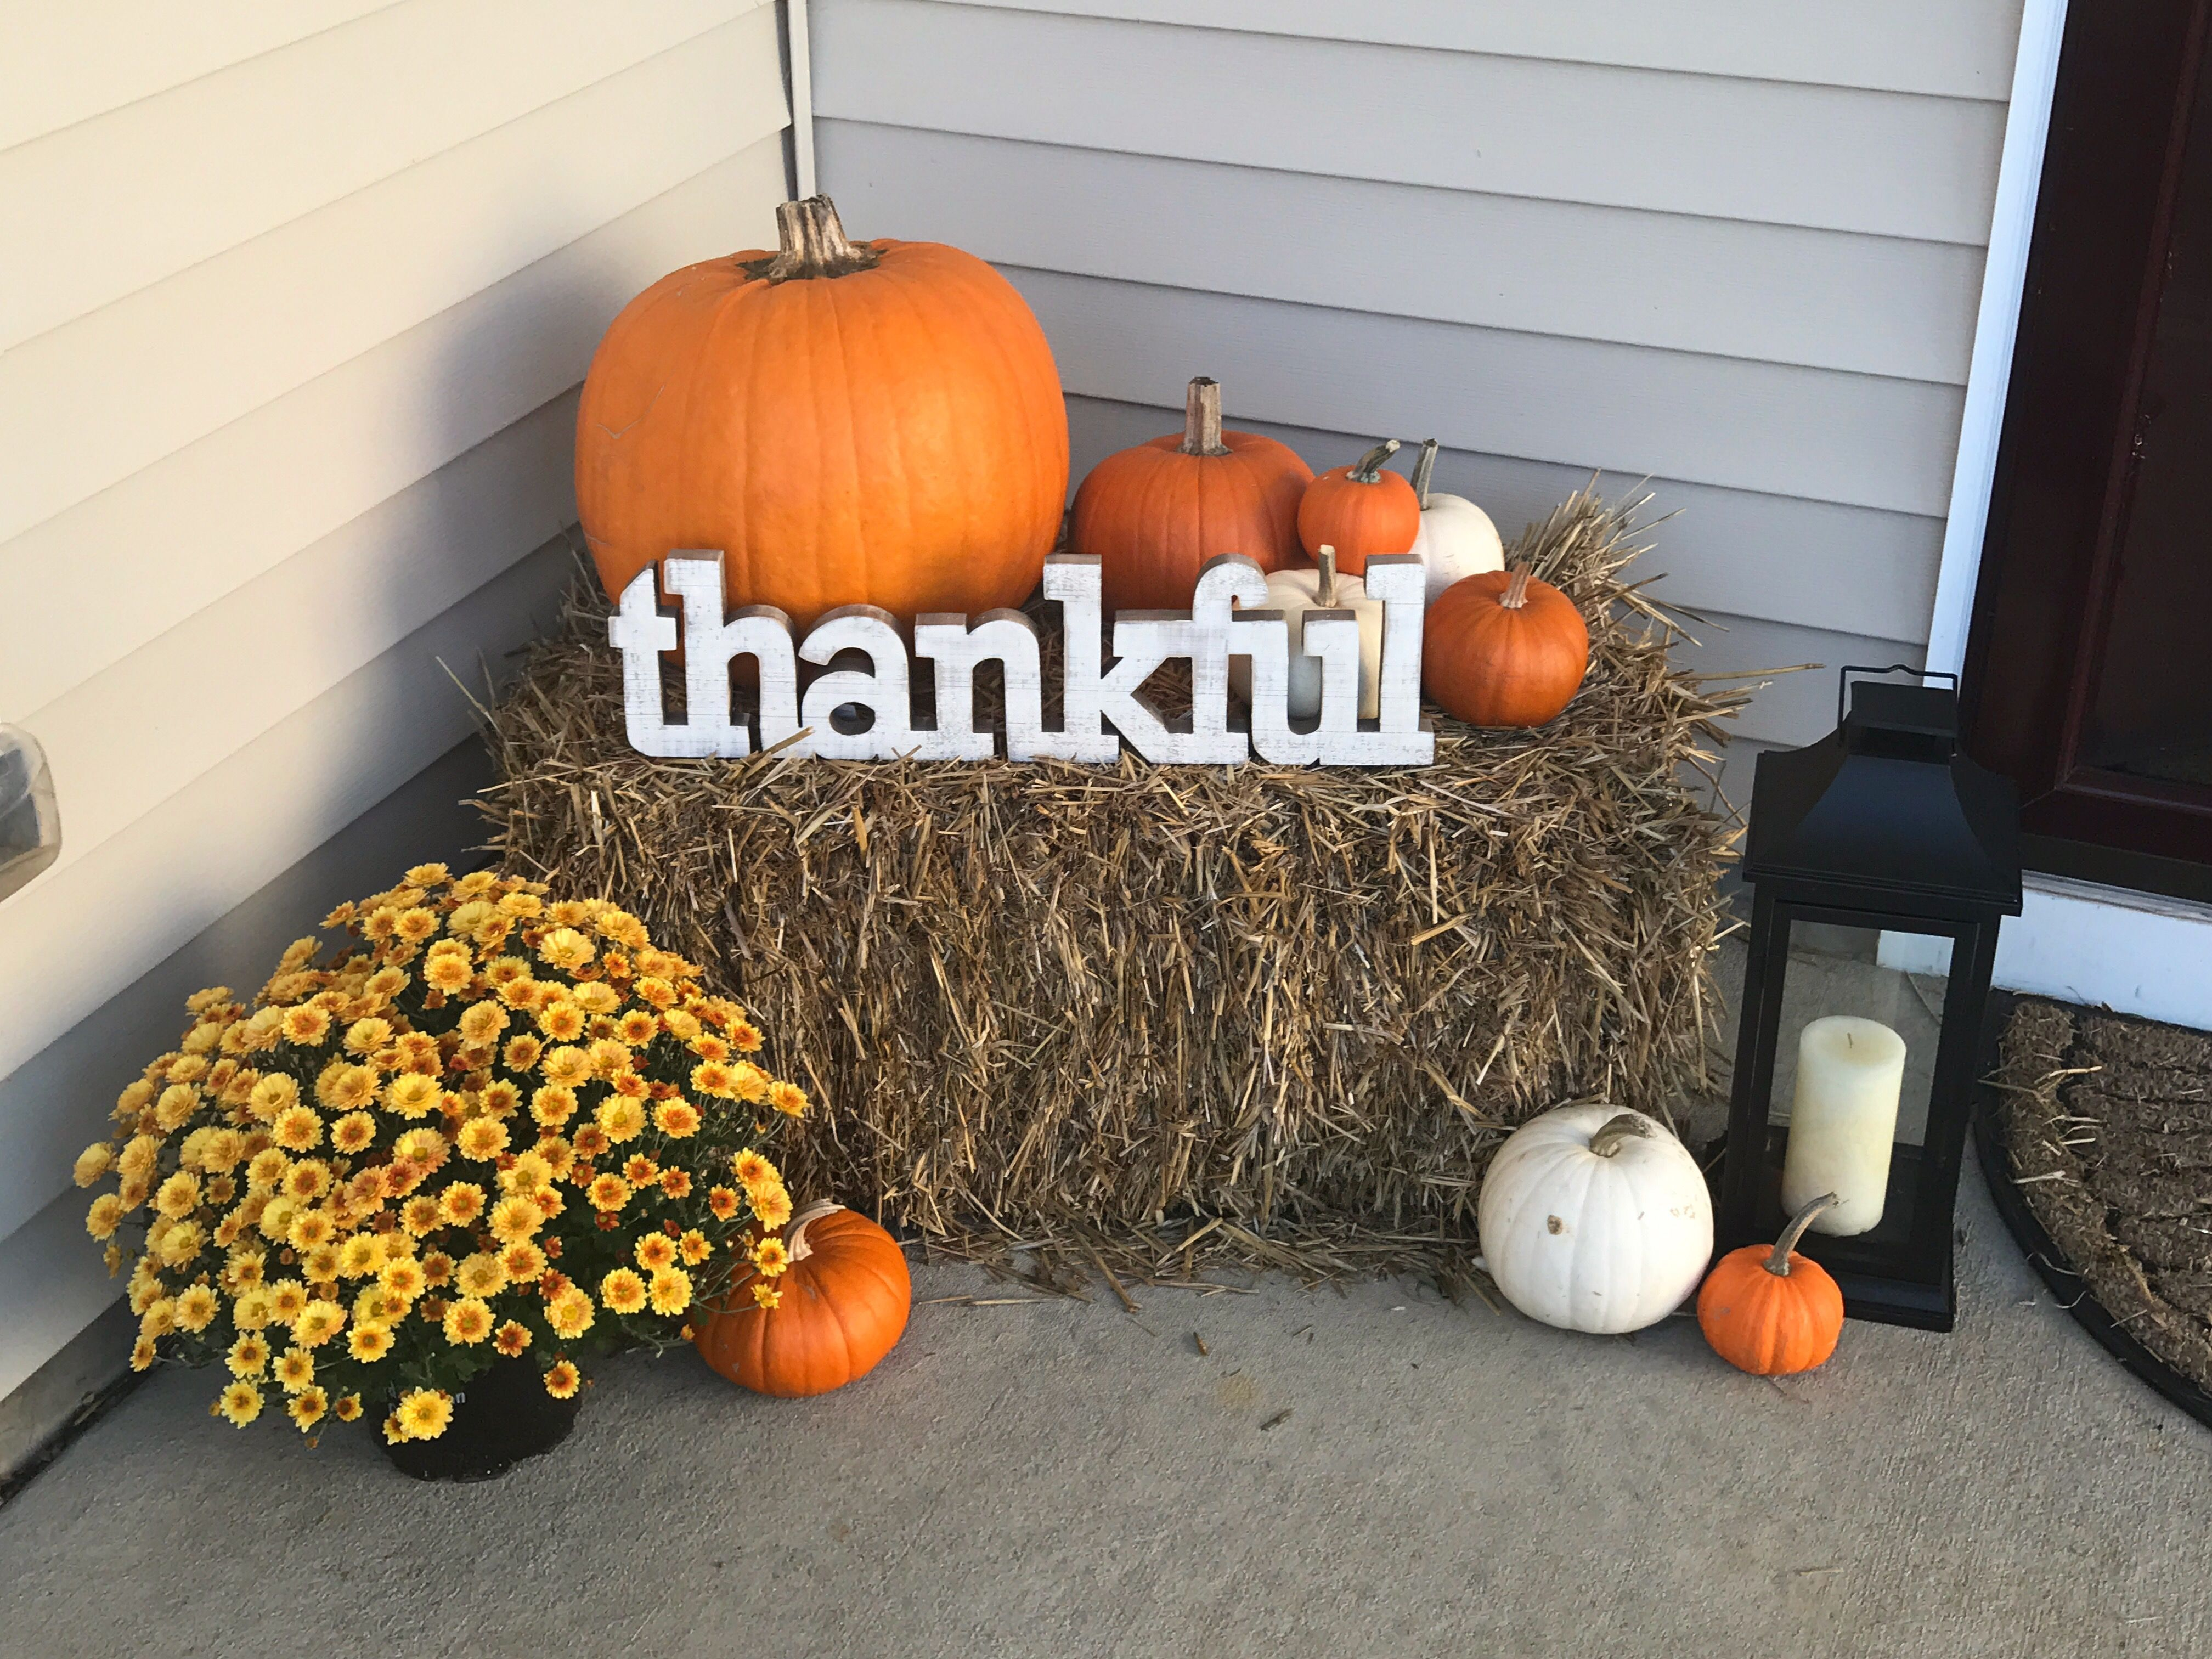 Fall Porch Decor Hay Bale 6 From Lowe S Lantern From Tj Maxx Thankful Sign From Hobby Lobb Fall Decorations Porch Fall Front Porch Decor Fall Patio Decor